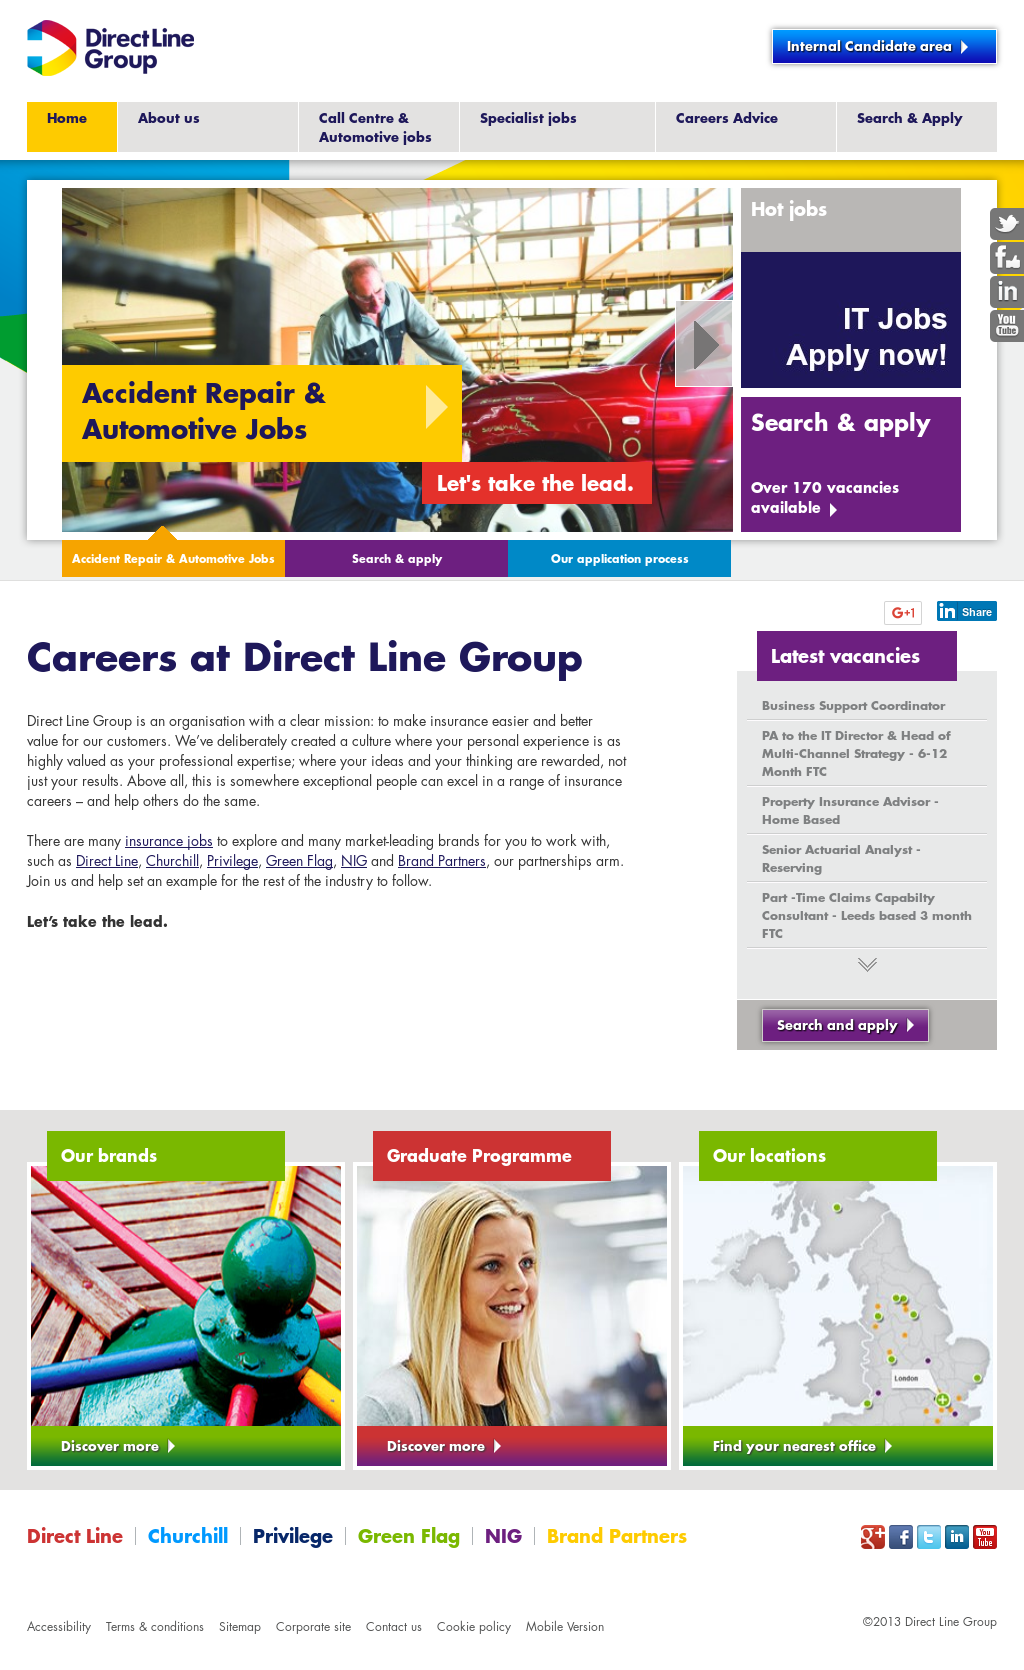 Direct Line Group Competitors, Revenue and Employees - Owler Company